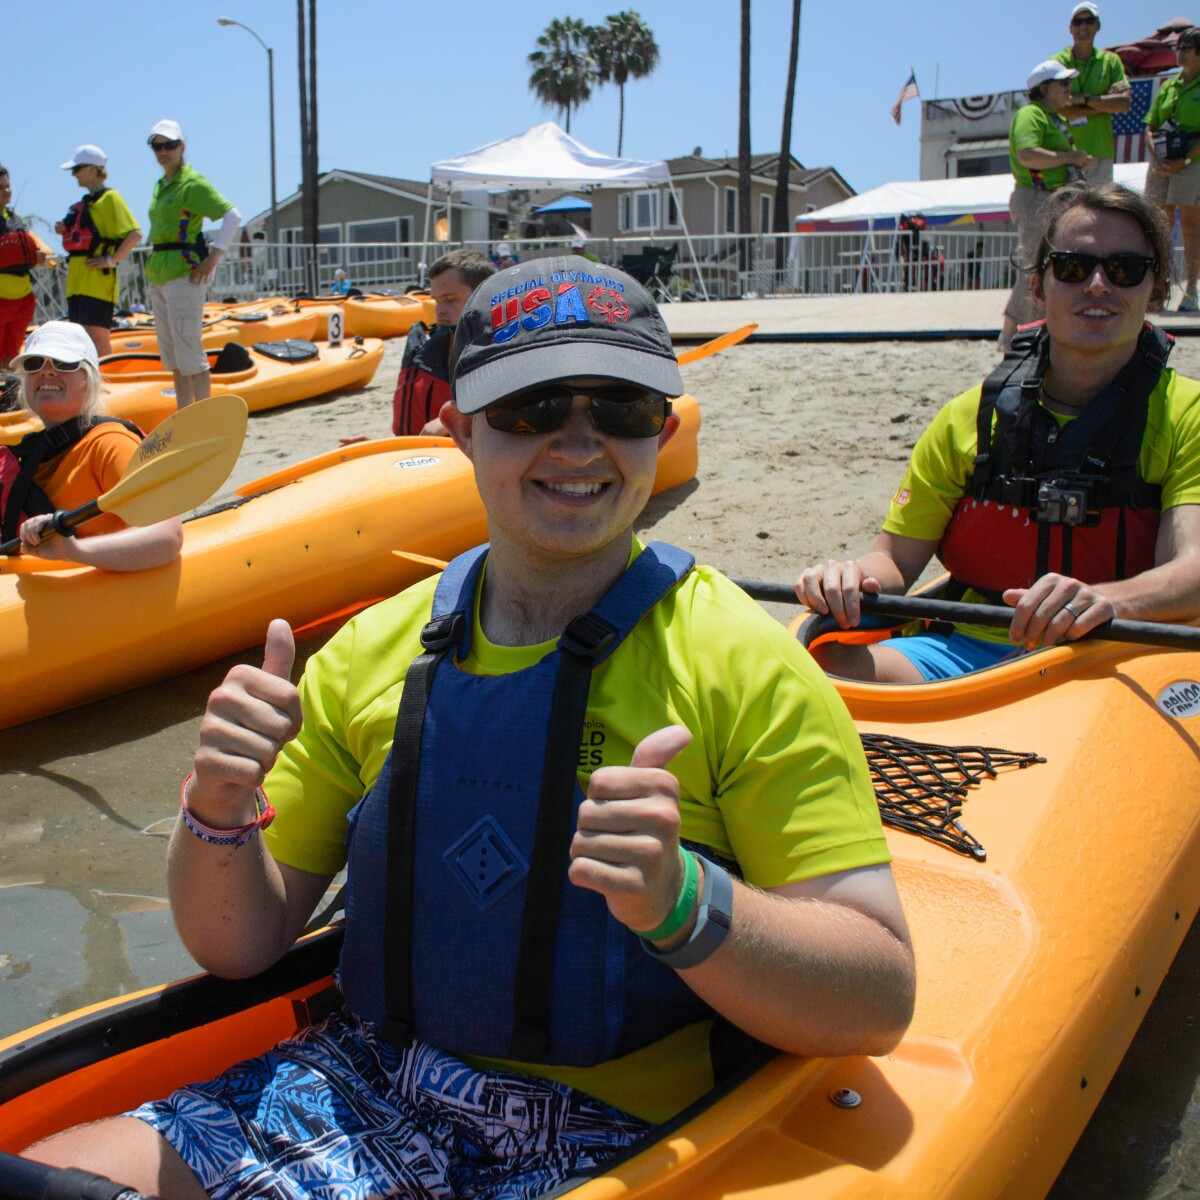 Kayakers Prepare to Get Into the Water at a Unified Sports Experience Event in Los Angeles During the 2015 World Summer Games